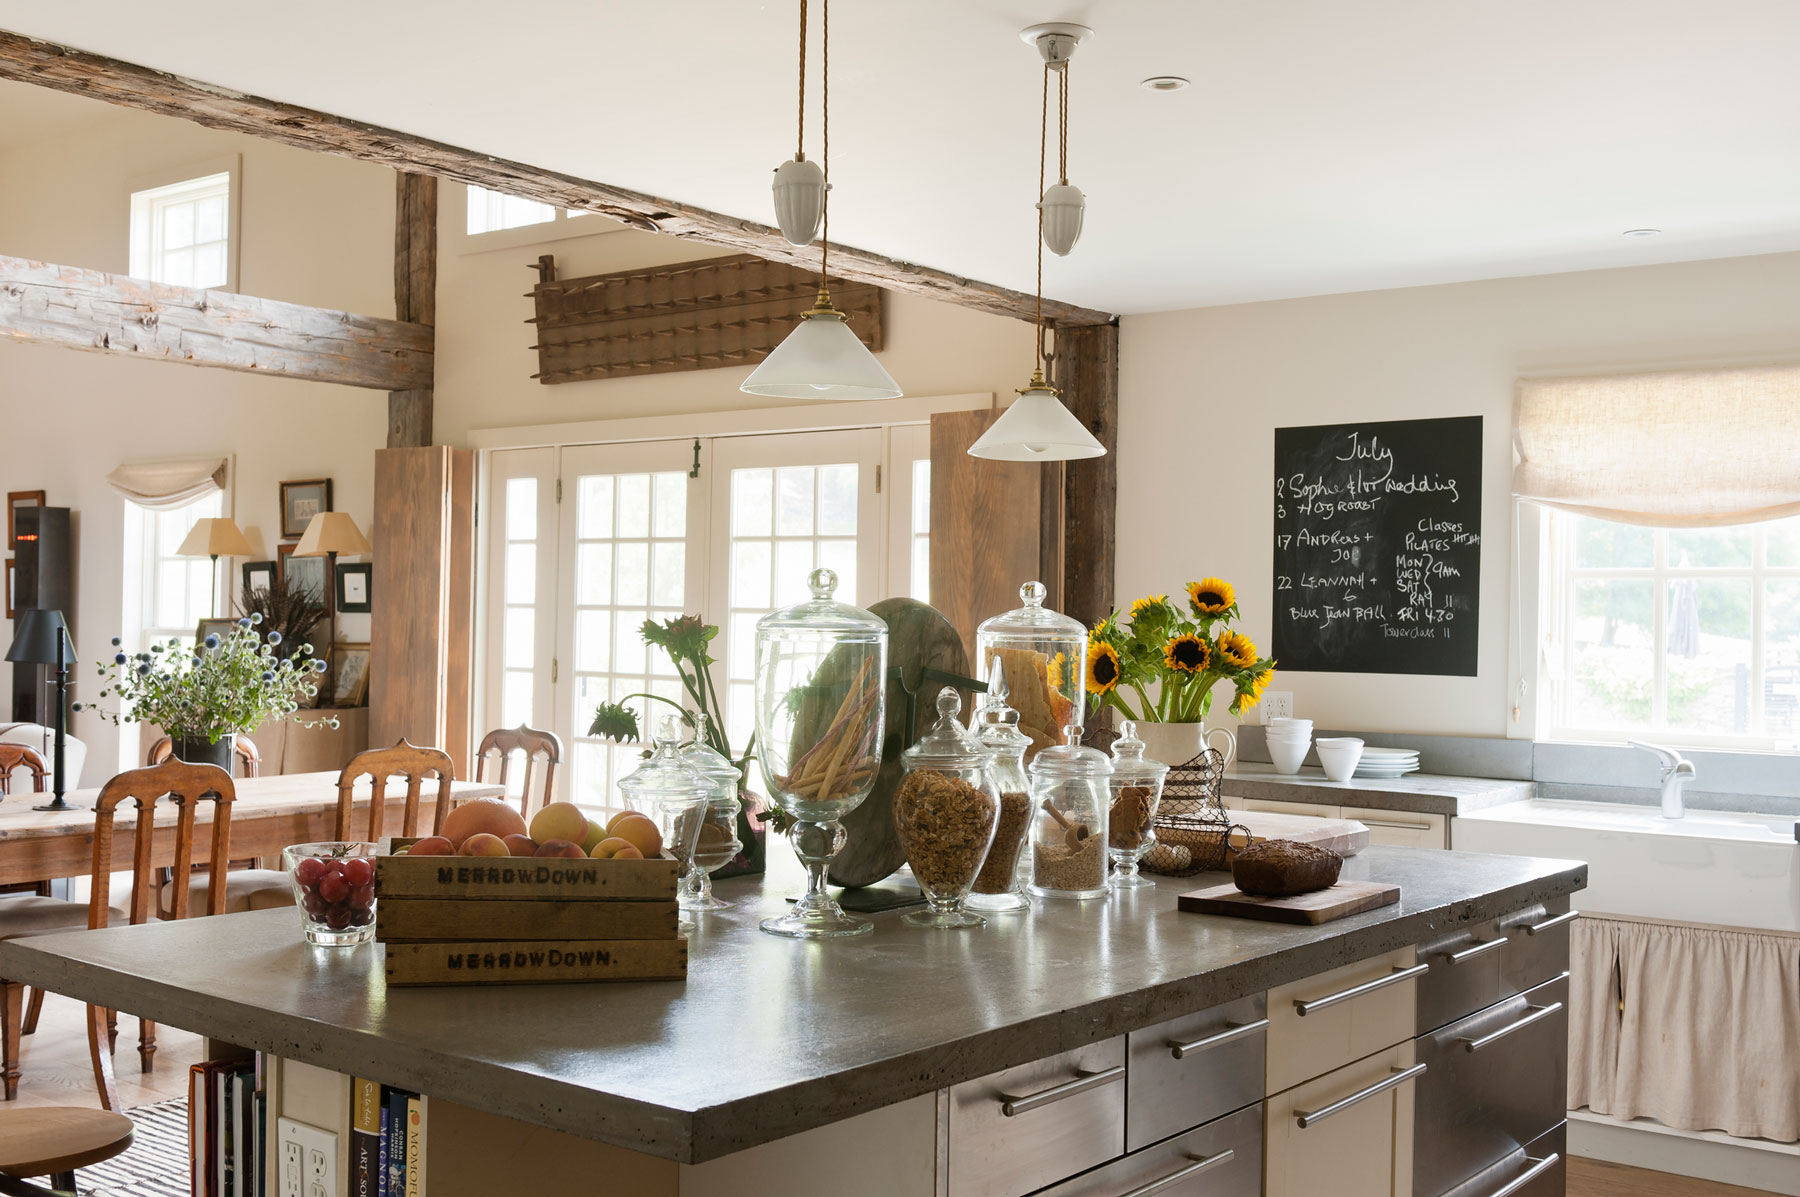 Concrete countertops in a rustic kitchen